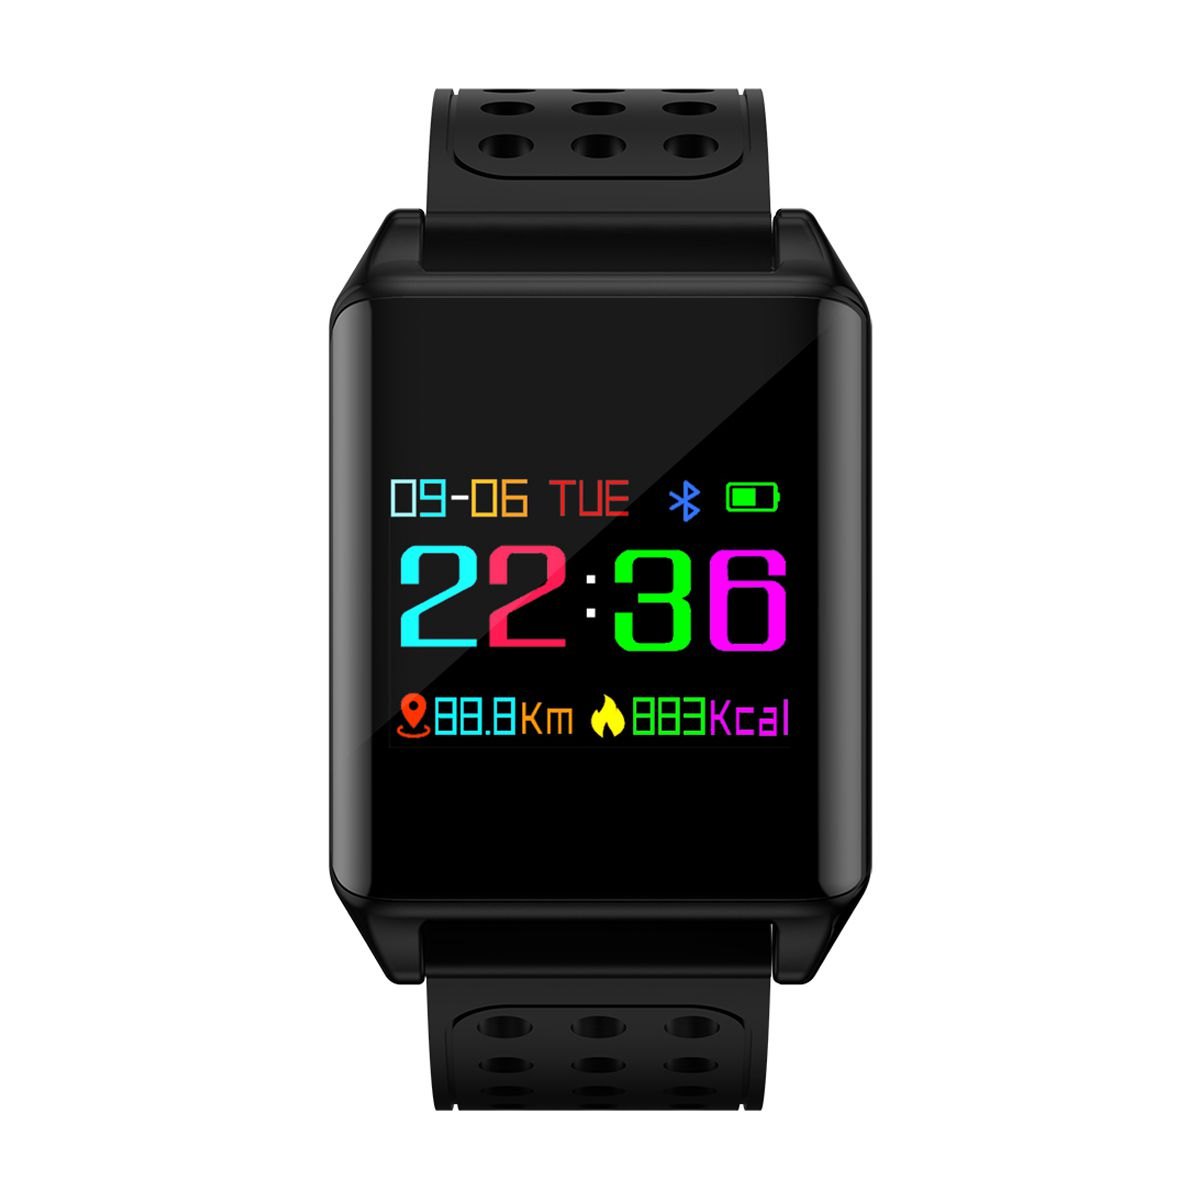 M7 Colorful OLED Screen Sport Smart Band IP67 Waterproof Support Heart Rate Blood Pressure Predometer Smart Watch for Gifts